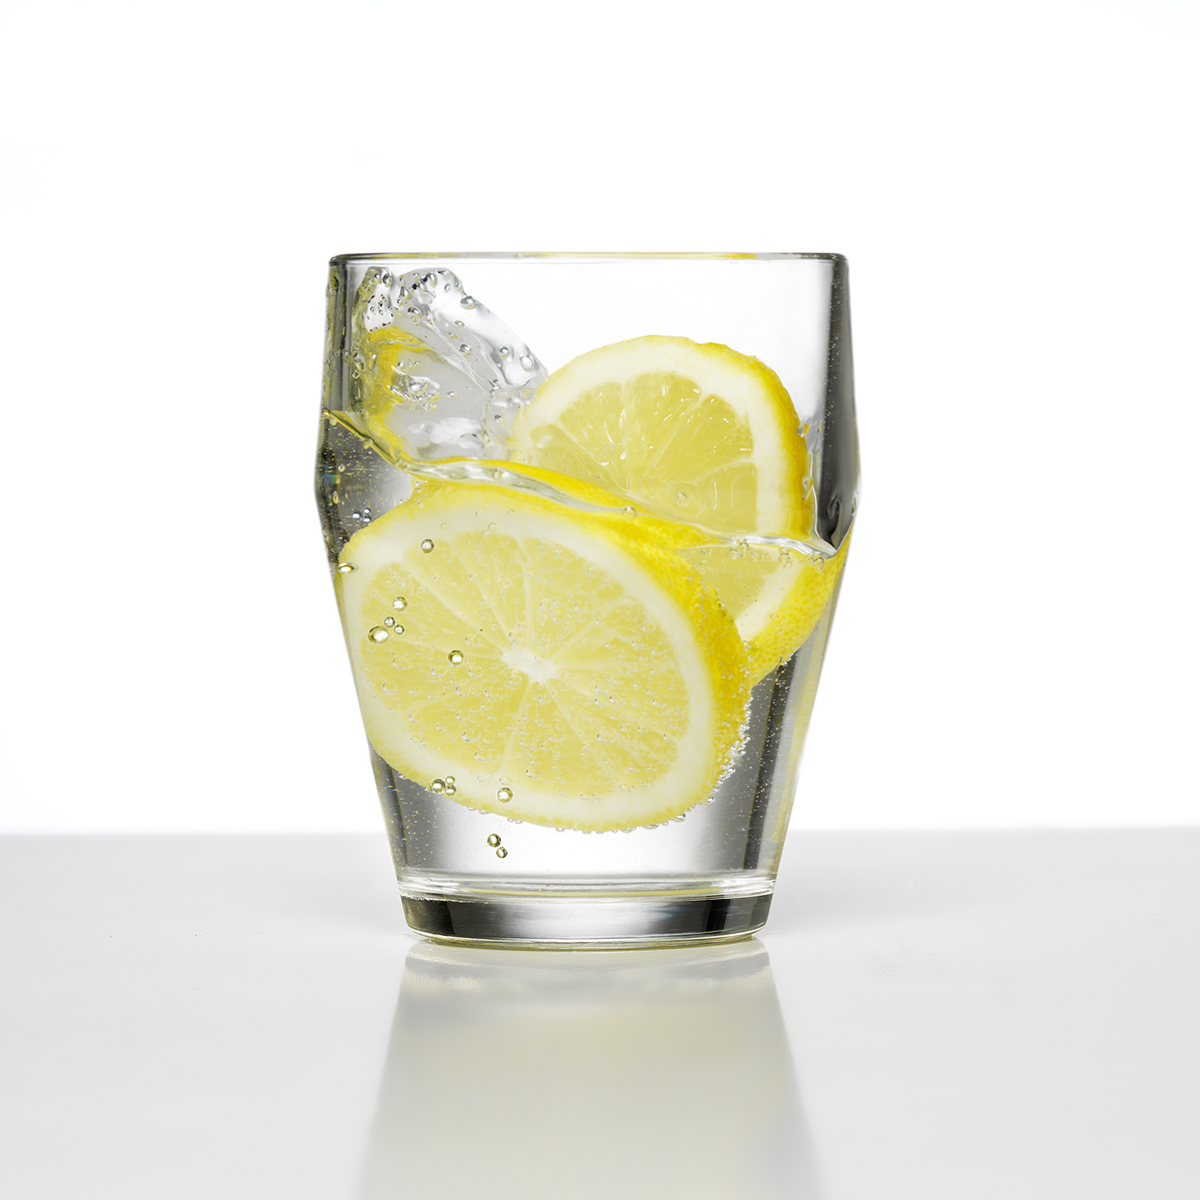 lose-up-to-5-pounds-a-week-just-by-drinking-this-amazing-drink